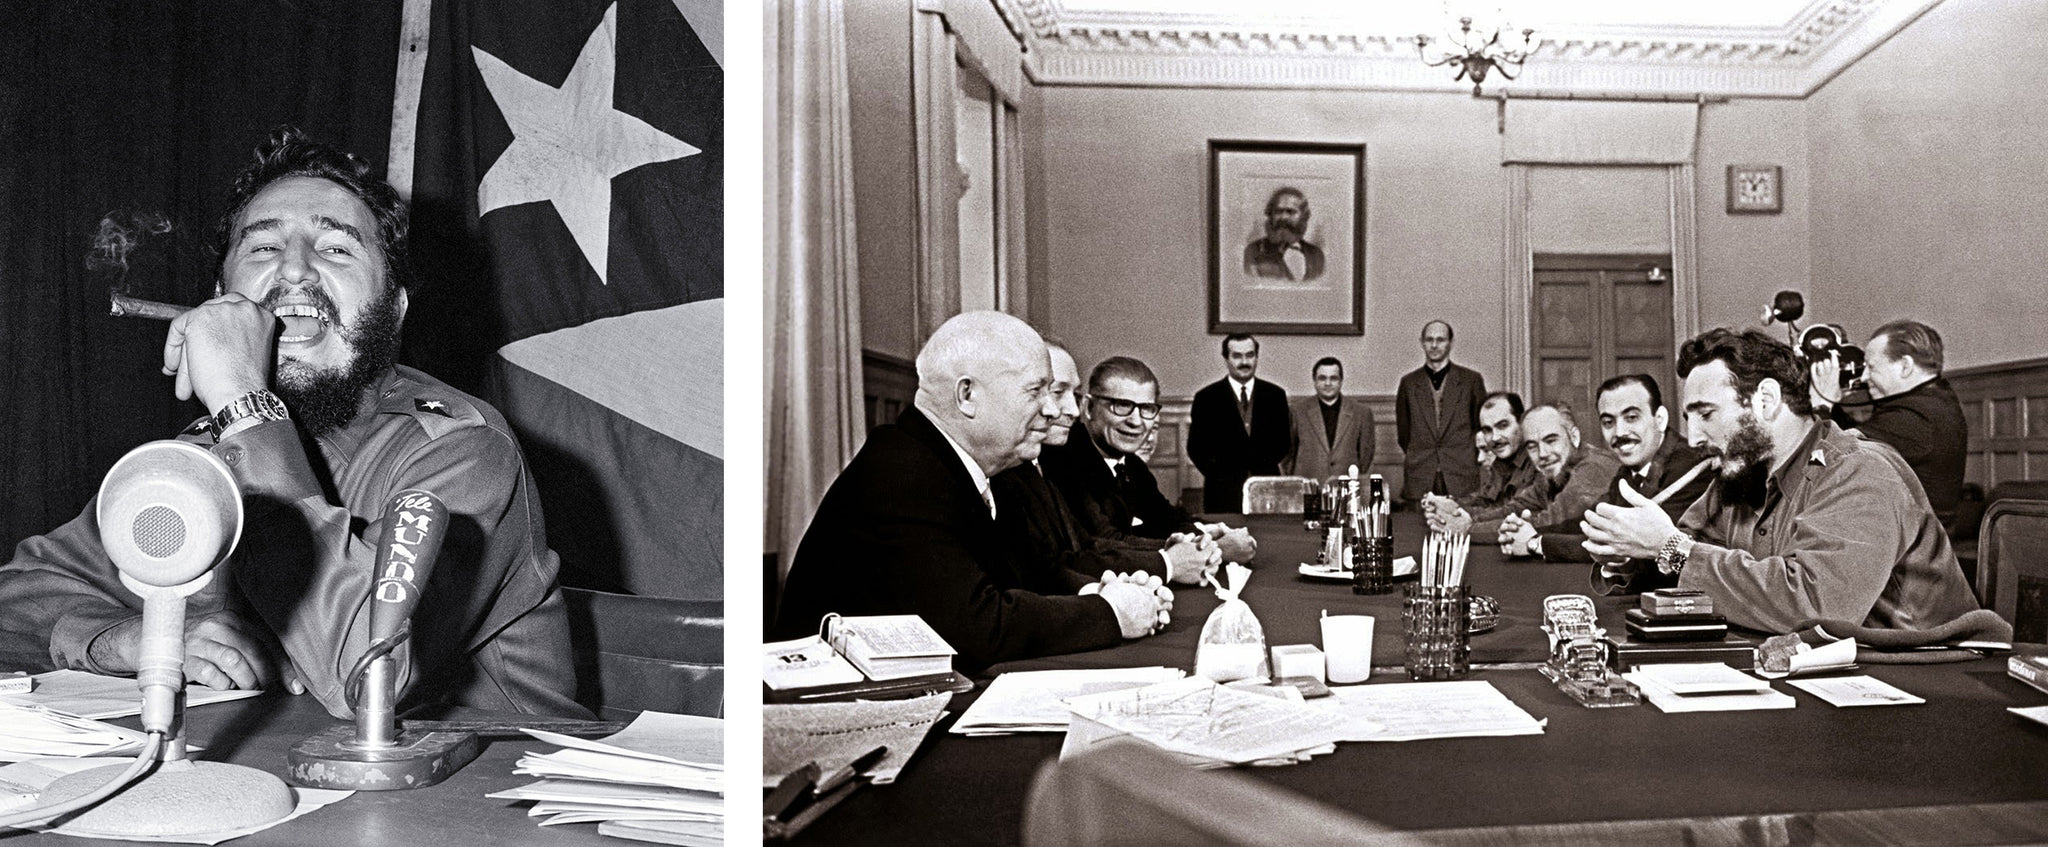 fidel castro smoking a Habano Fidel Castro lighting a cigar during a meeting with Khrushchev, Kremlin, 1963